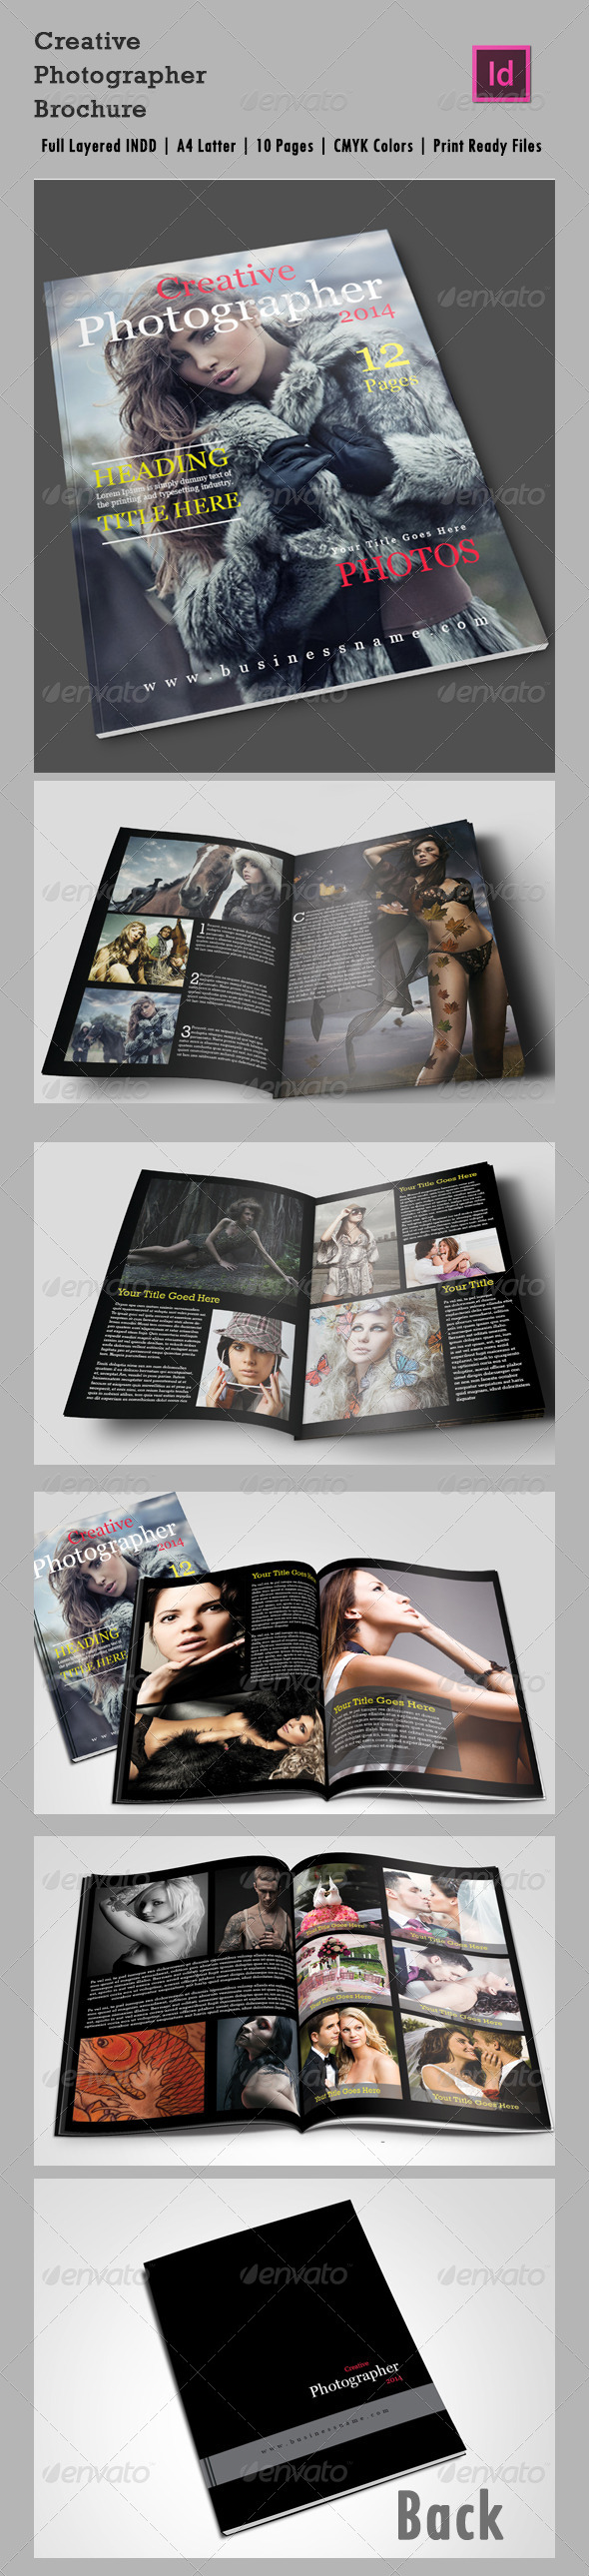 10 Page Creative Photographer InDesign Brochure A4 - Corporate Flyers